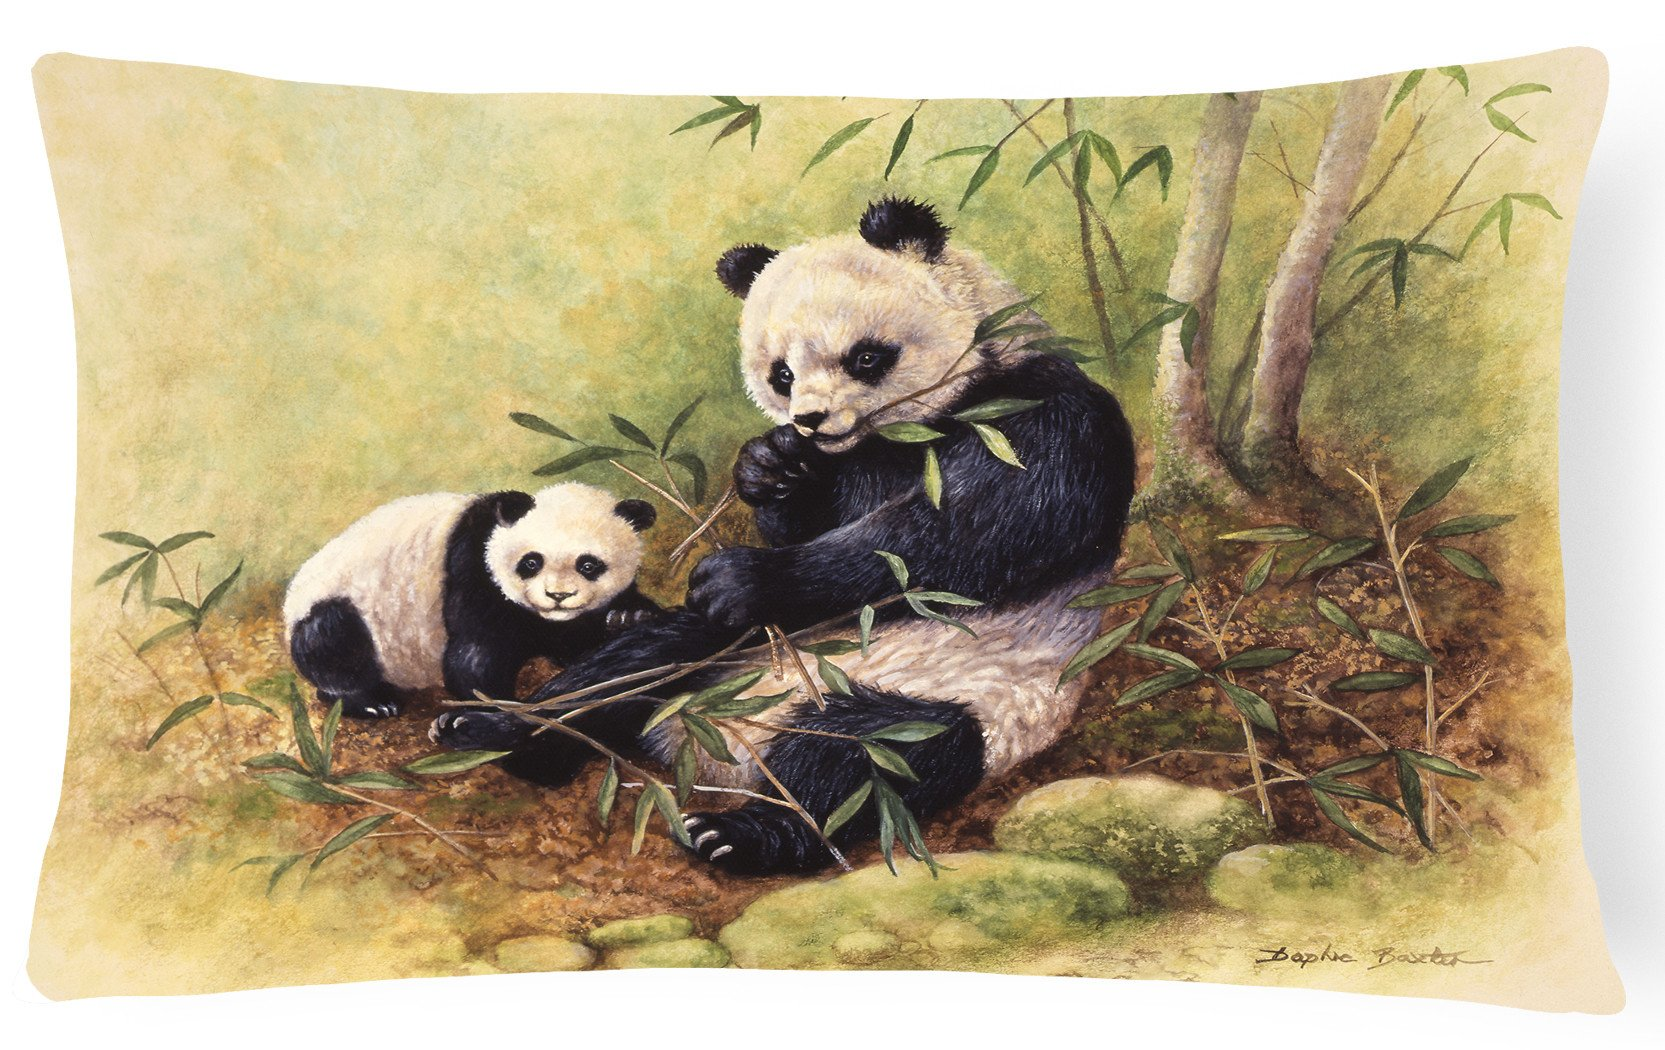 Panda Bears by Daphne Baxter Fabric Decorative Pillow BDBA0111PW1216 by Caroline's Treasures